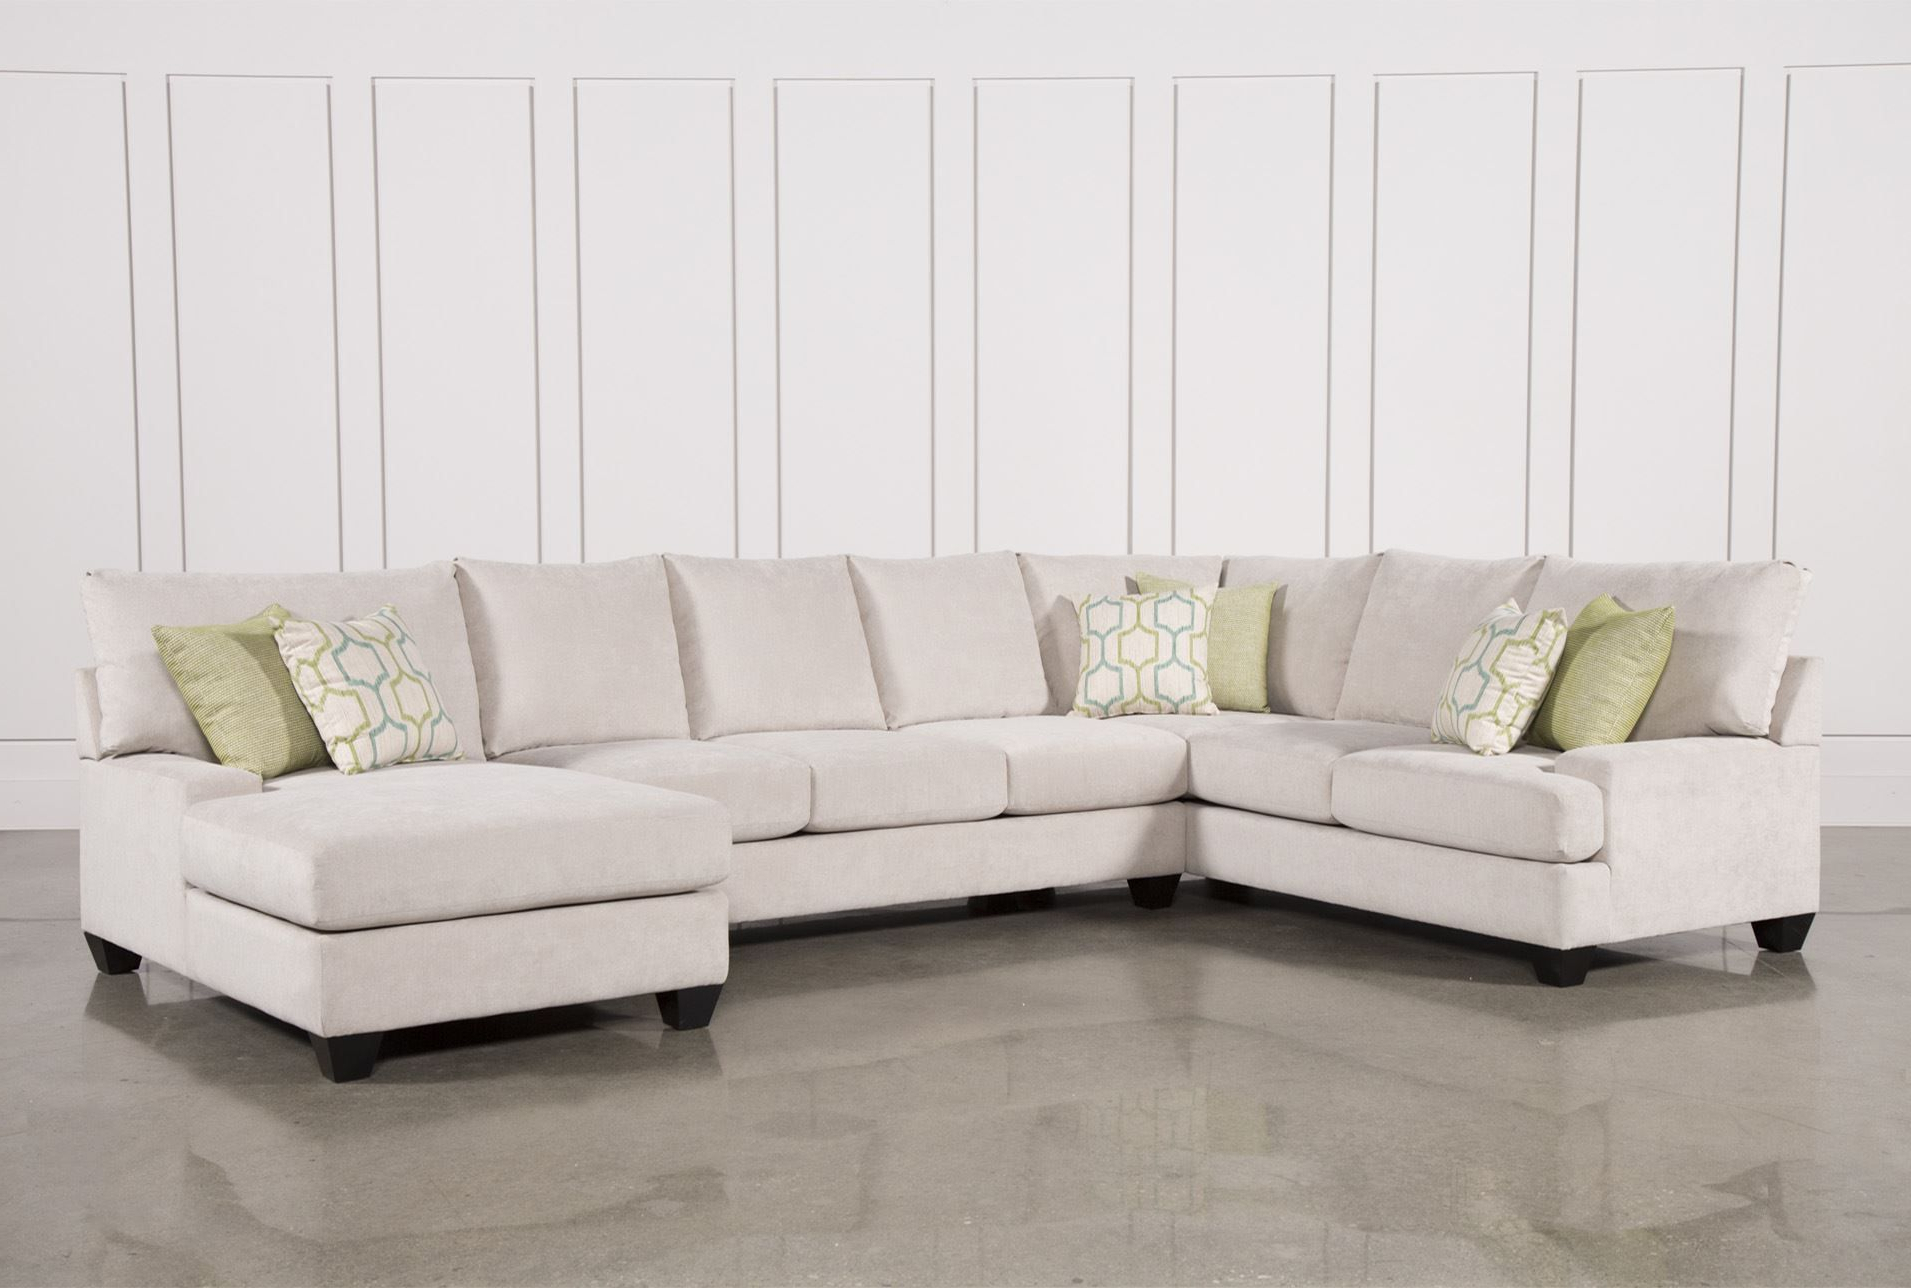 Adeline 3 Piece Sectionals For Latest Harper Foam 3 Piece Sectional W/raf Chaise (View 8 of 20)